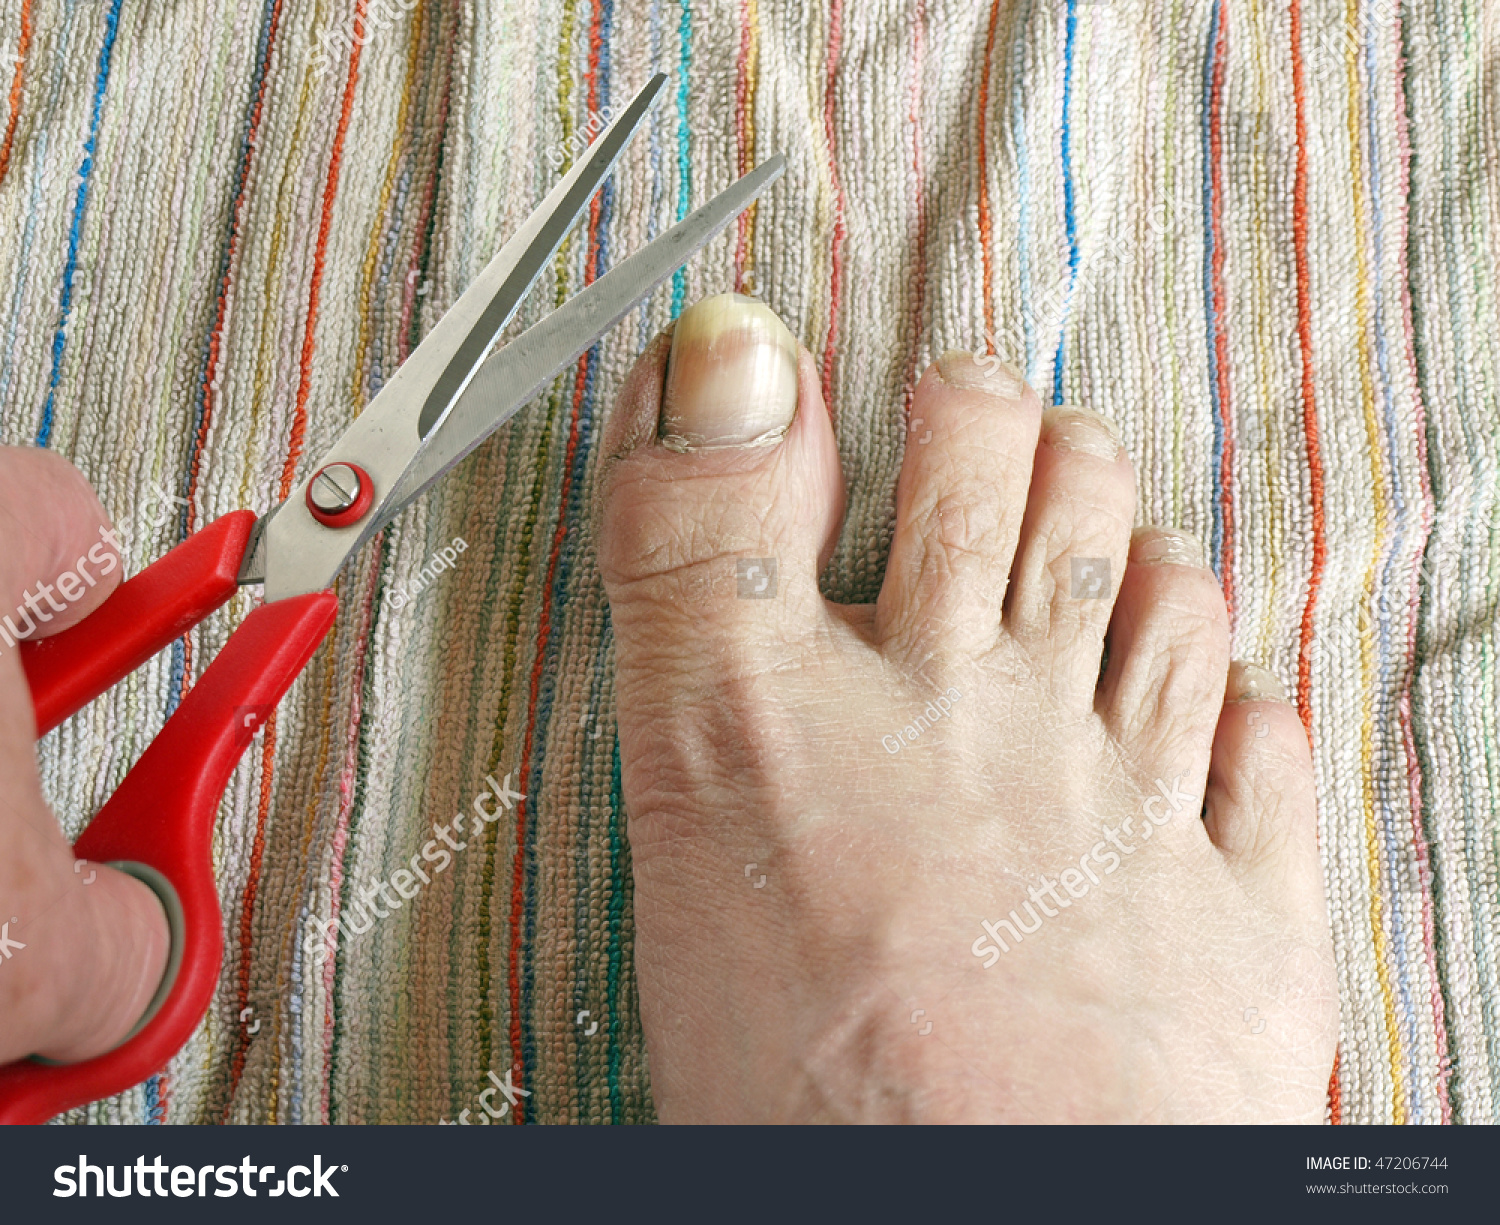 Long Toe Nails Hand Scissors Stock Photo (Royalty Free) 47206744 ...